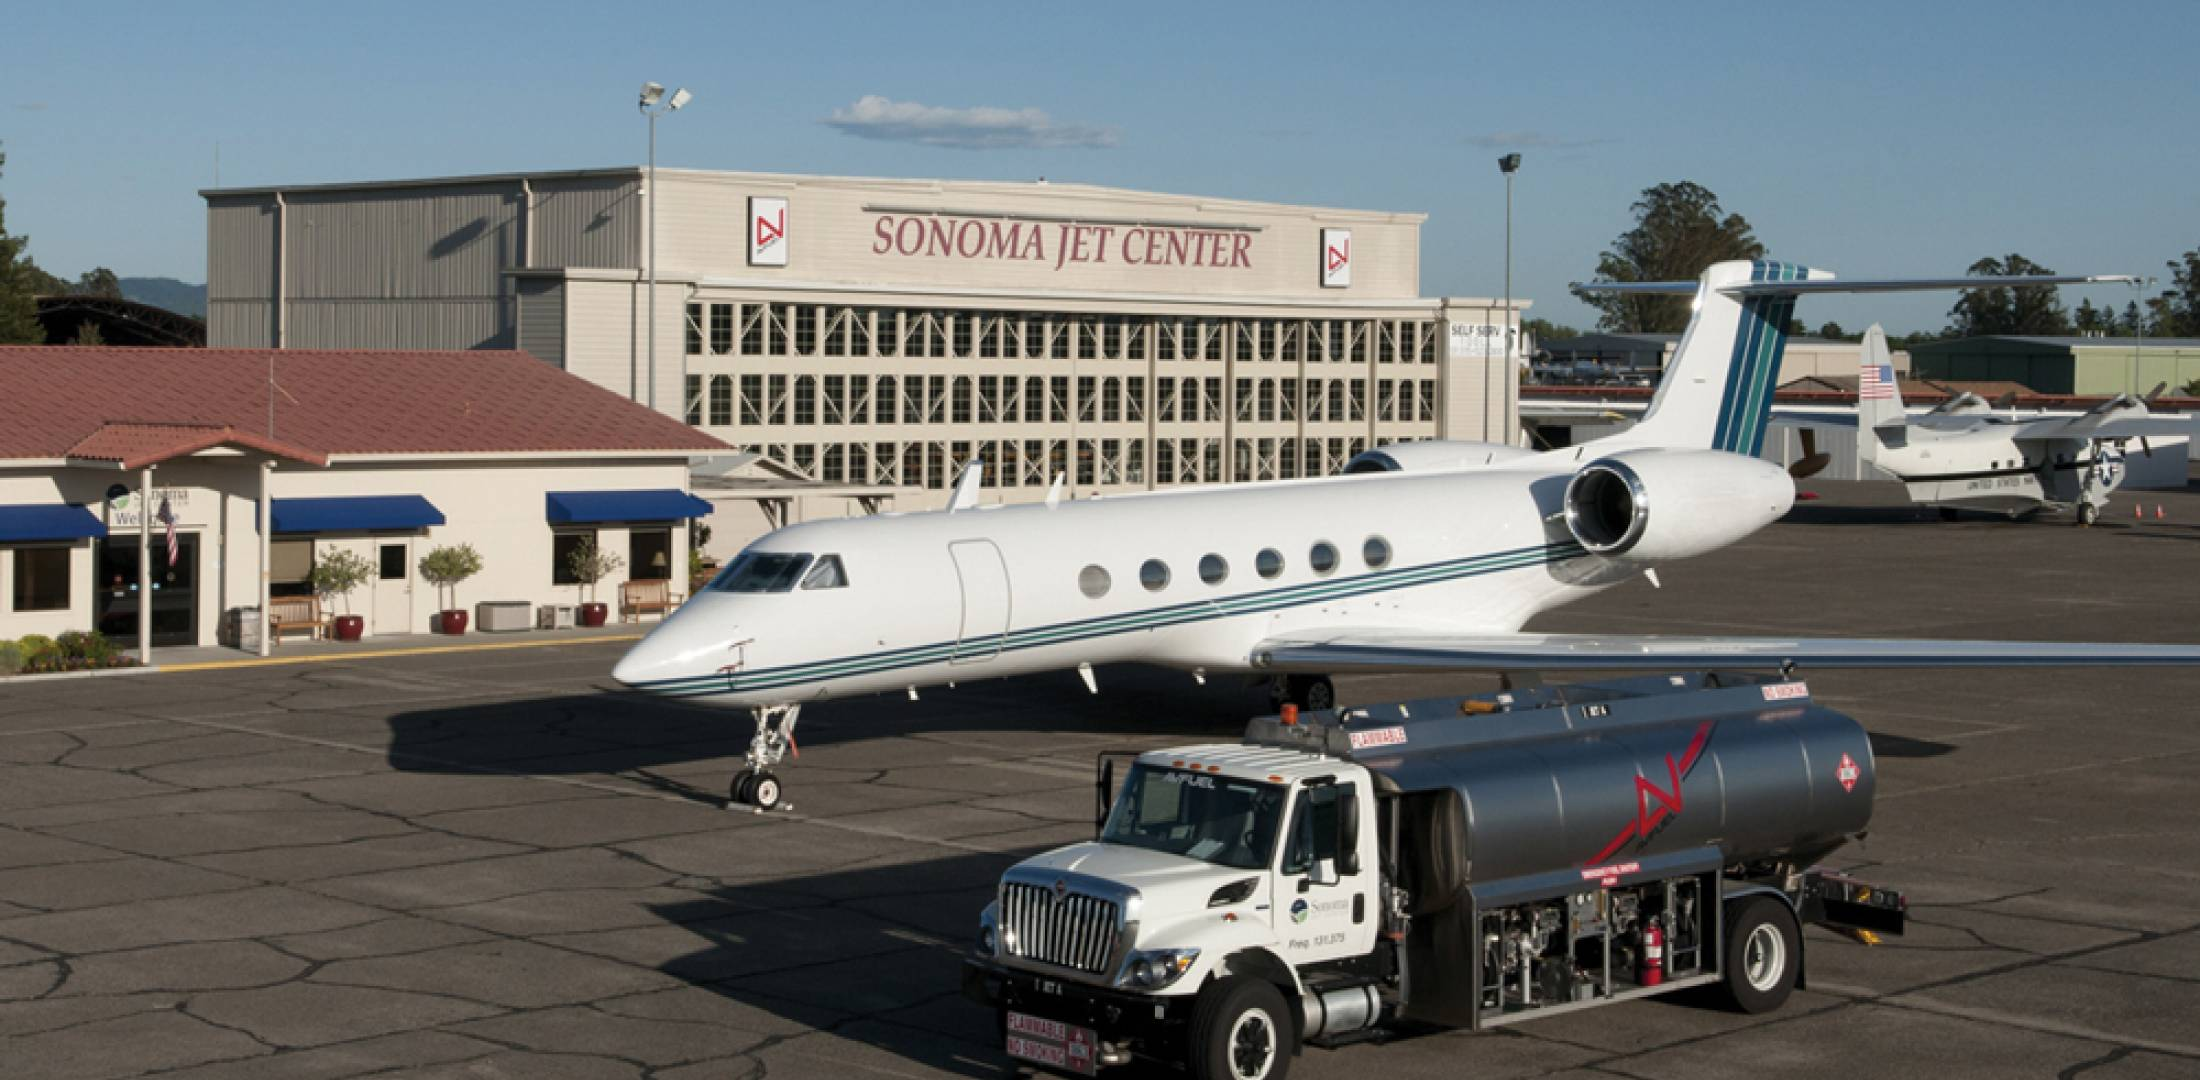 Sonoma Jet Center recently joined the Signature Select program.